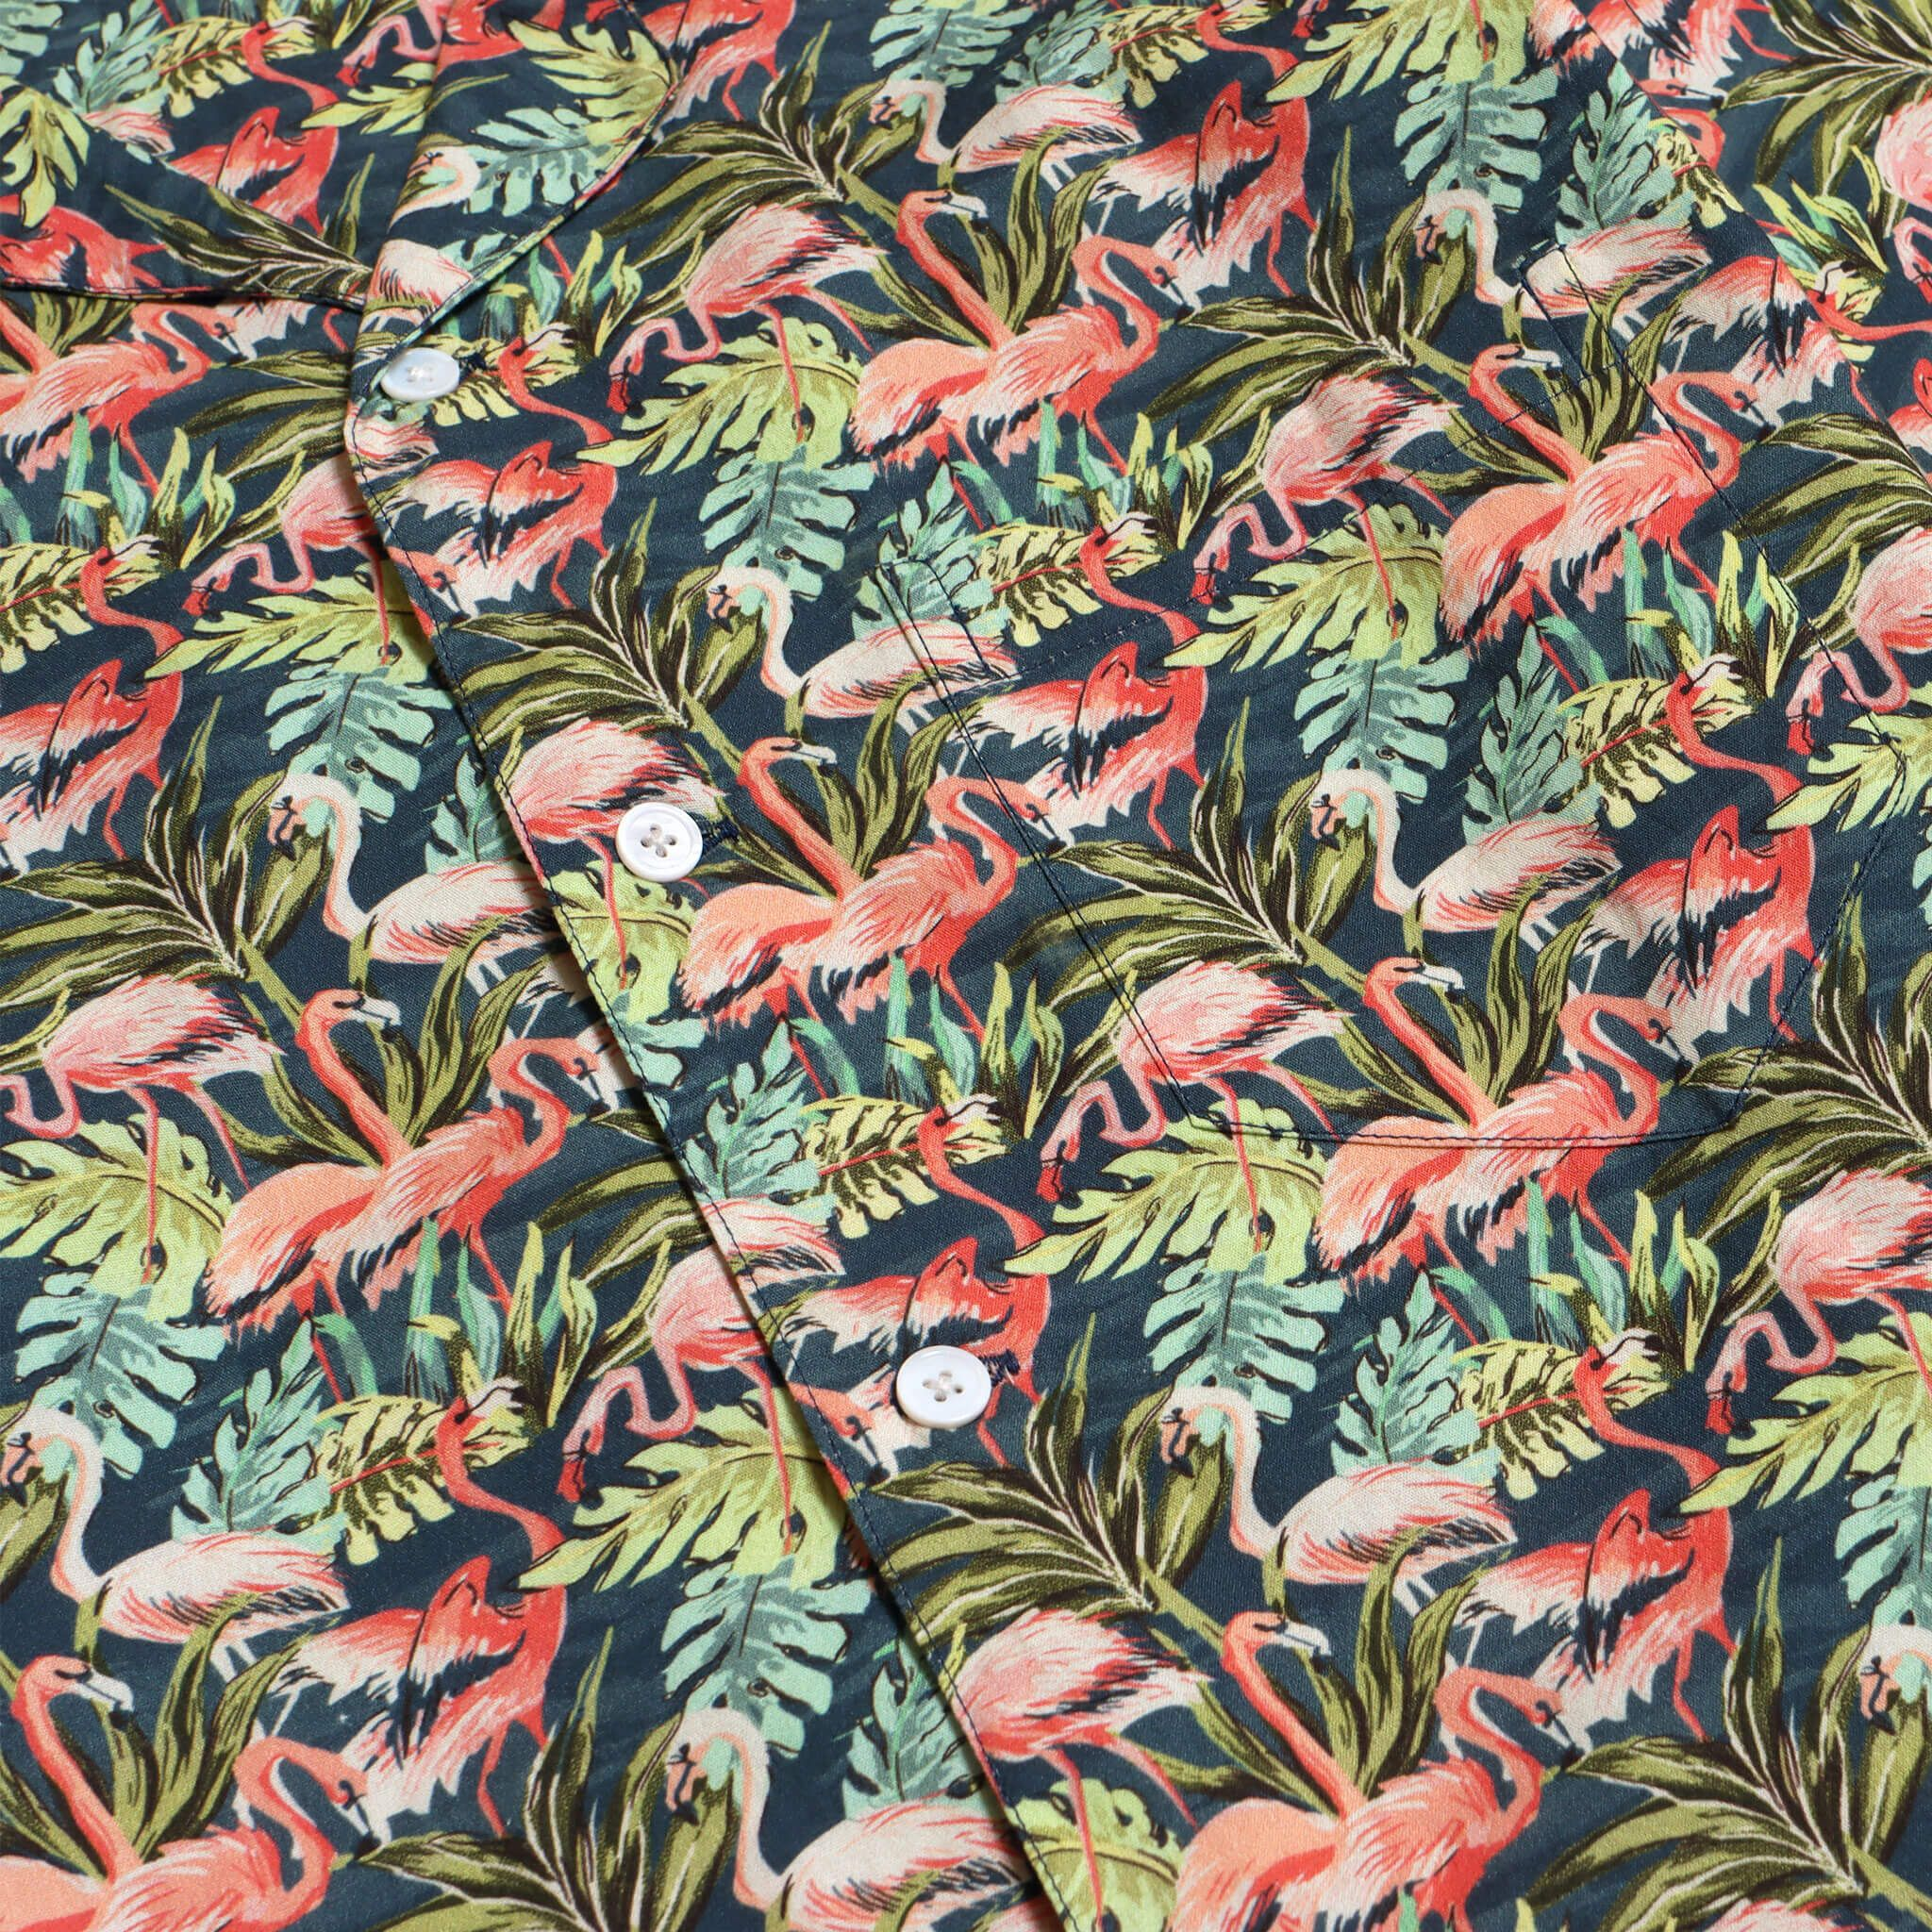 Far Afield Stachio Short Sleeve Shirt a Navy Cotton/Up-Cycled Fabric Hawaiian Bowling Style Smart Casual 3